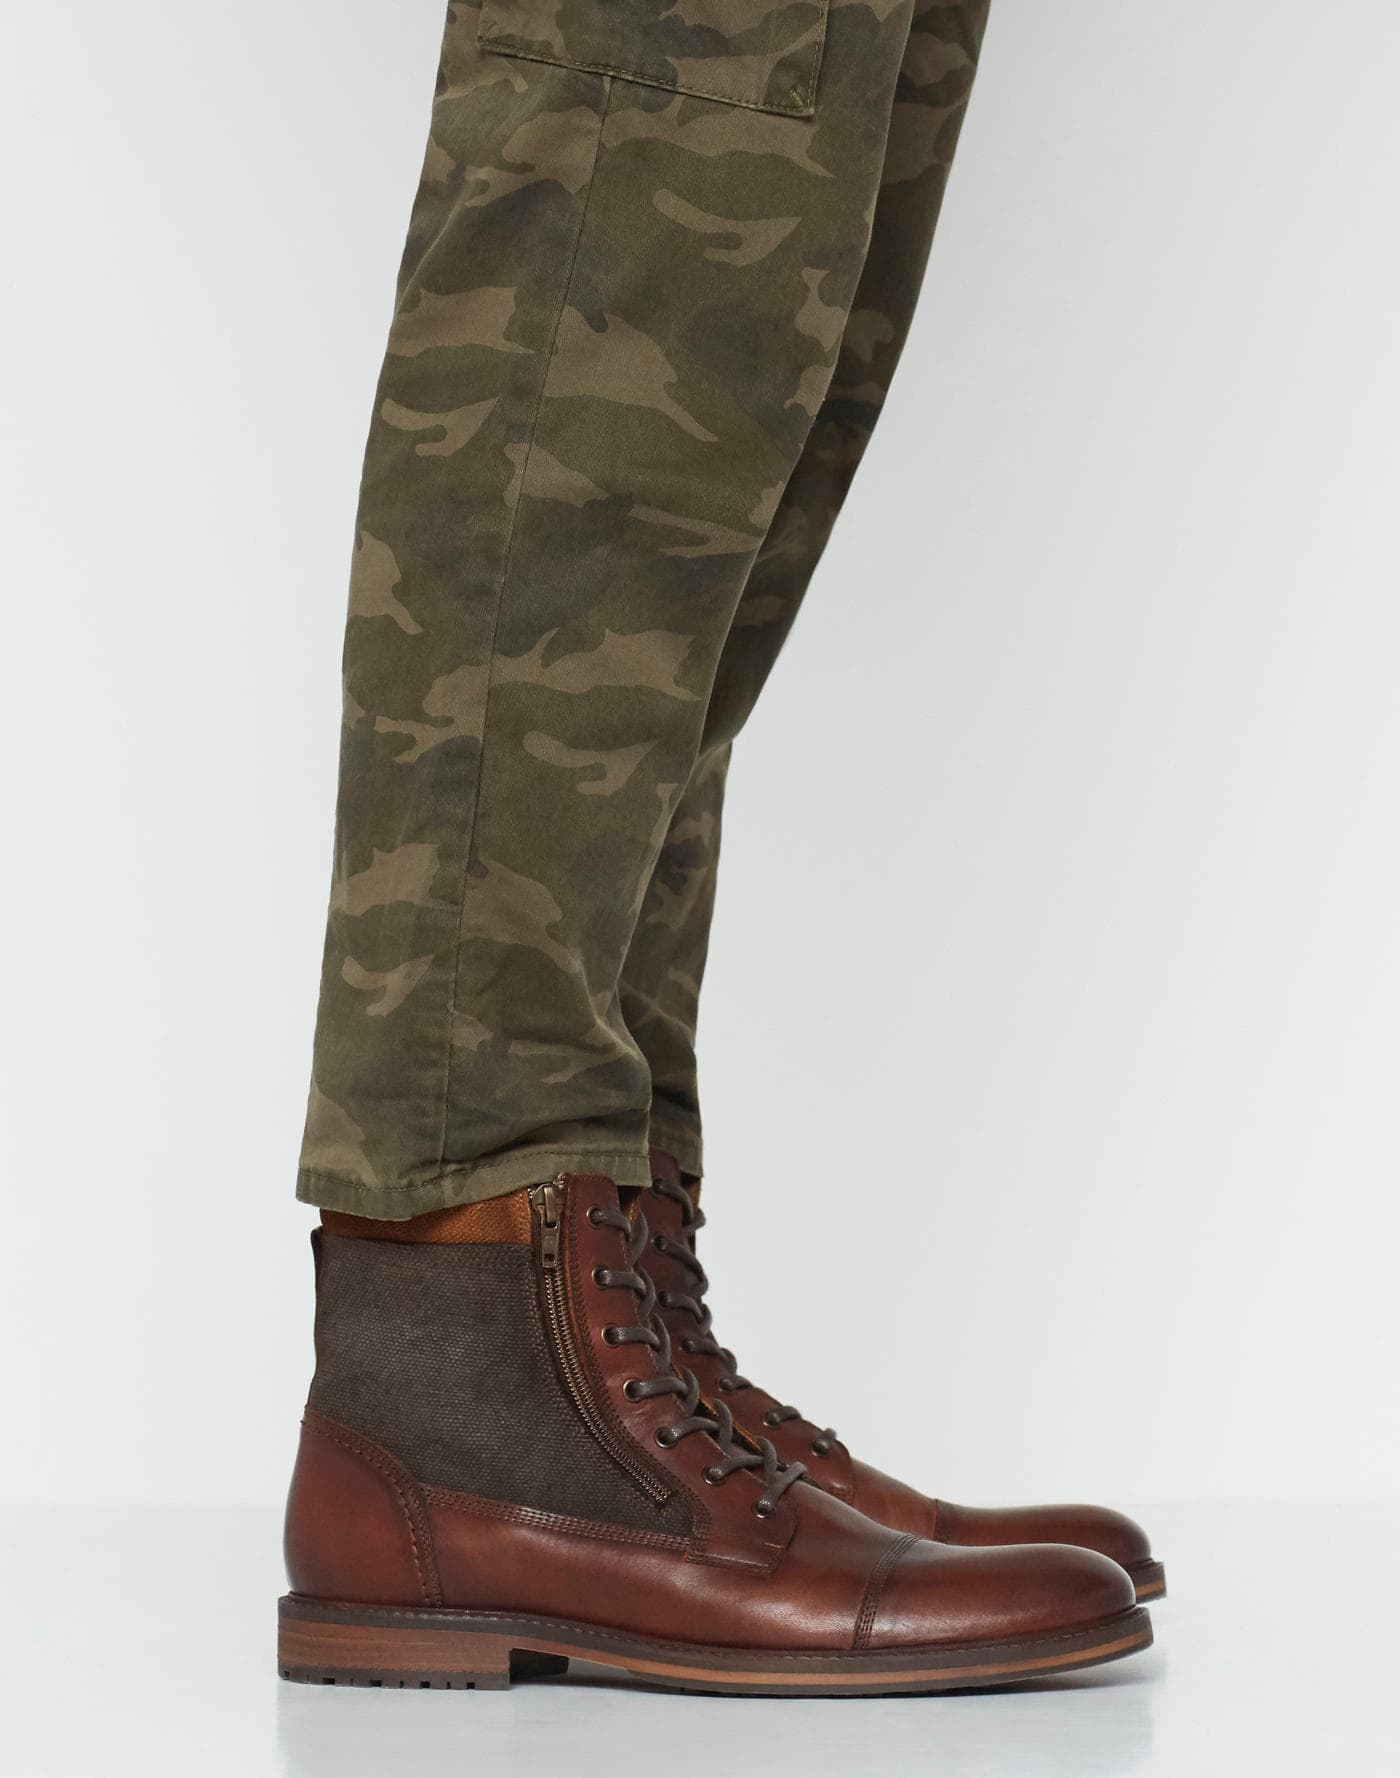 5fc378d8f Men's Boots | Dress & Chelsea Boots For Men | ALDO US | Aldoshoes.com US